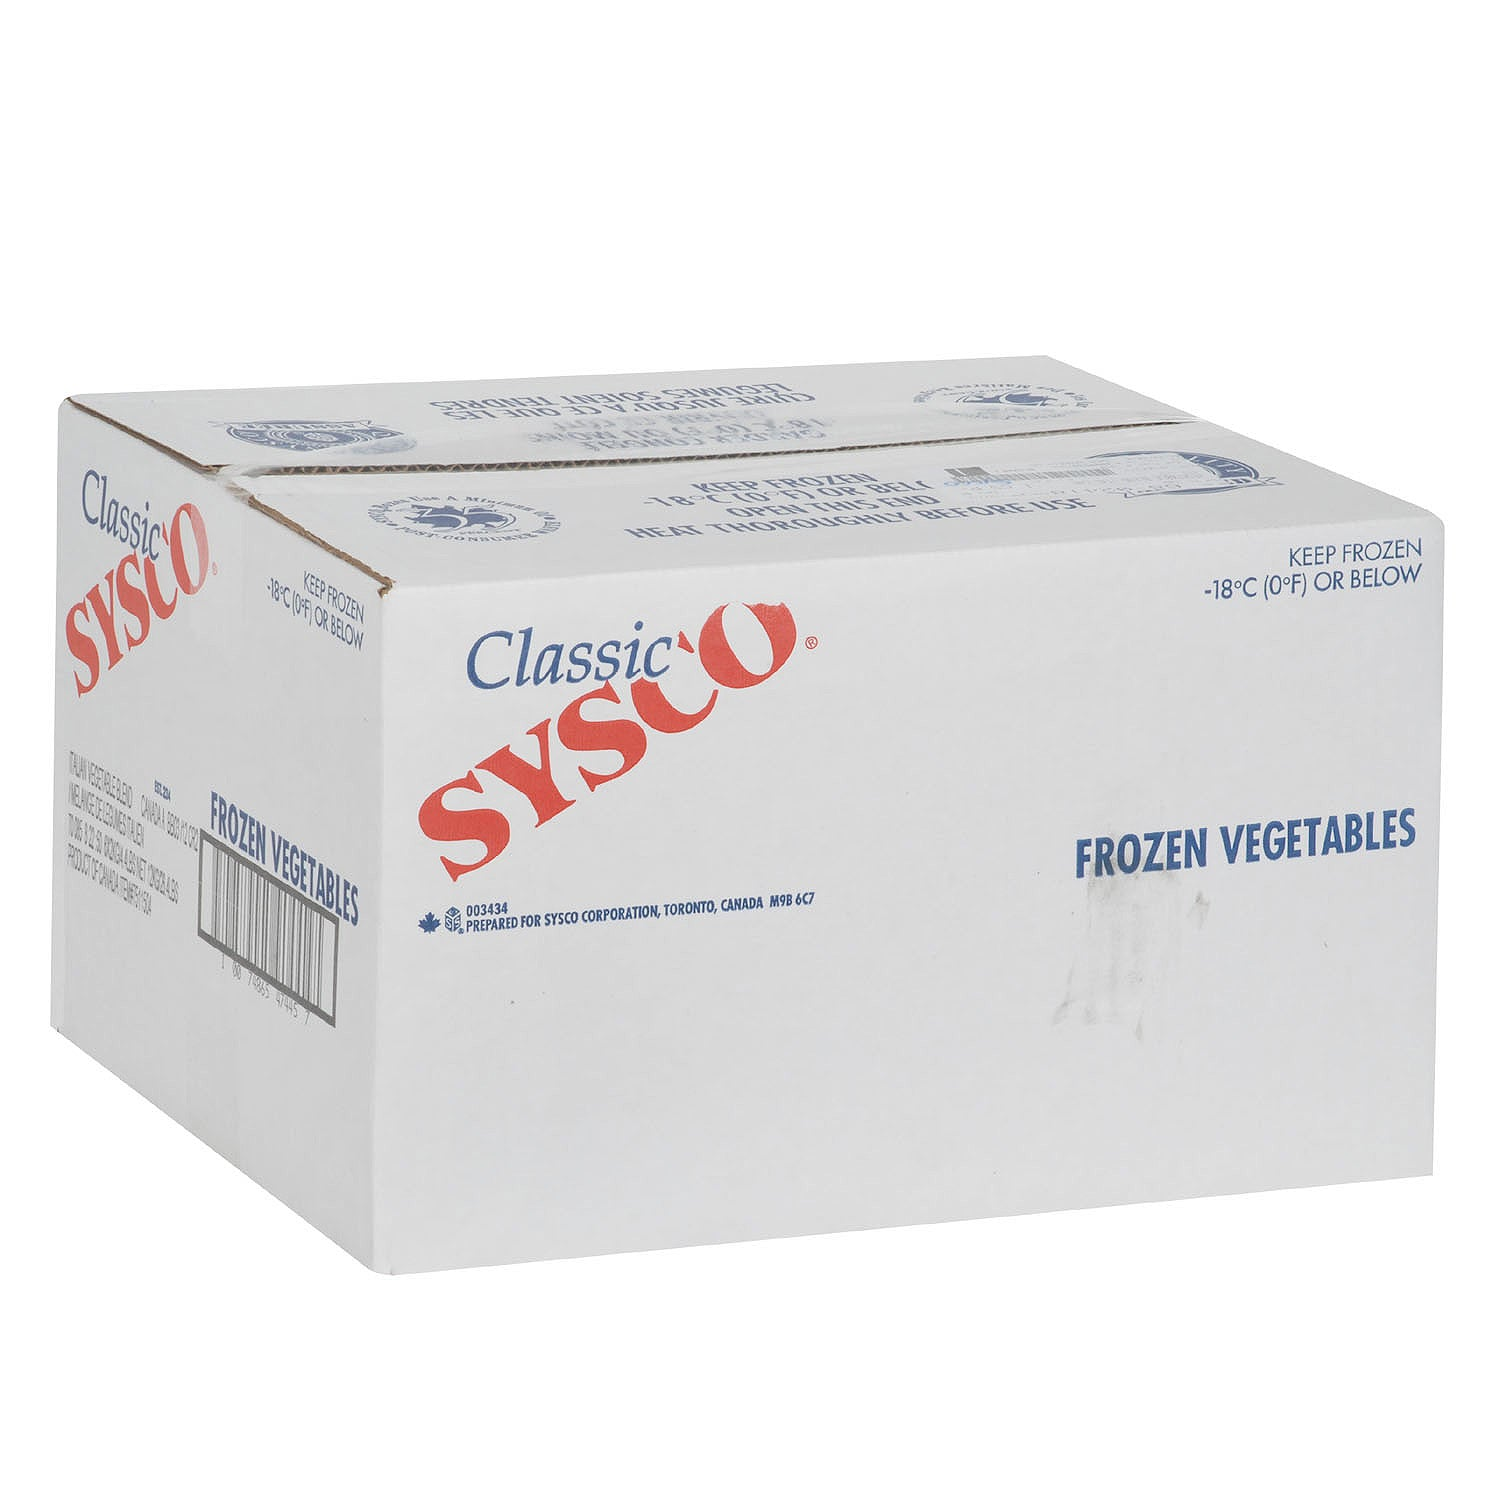 Sysco Classic Frozen Italian Blend Mixed Vegetables (Carrots/Zucchini/Cauliflower/Romano & Lima Beans/Red Peppers) 2 kg - 6 Pack [$3.58/kg]